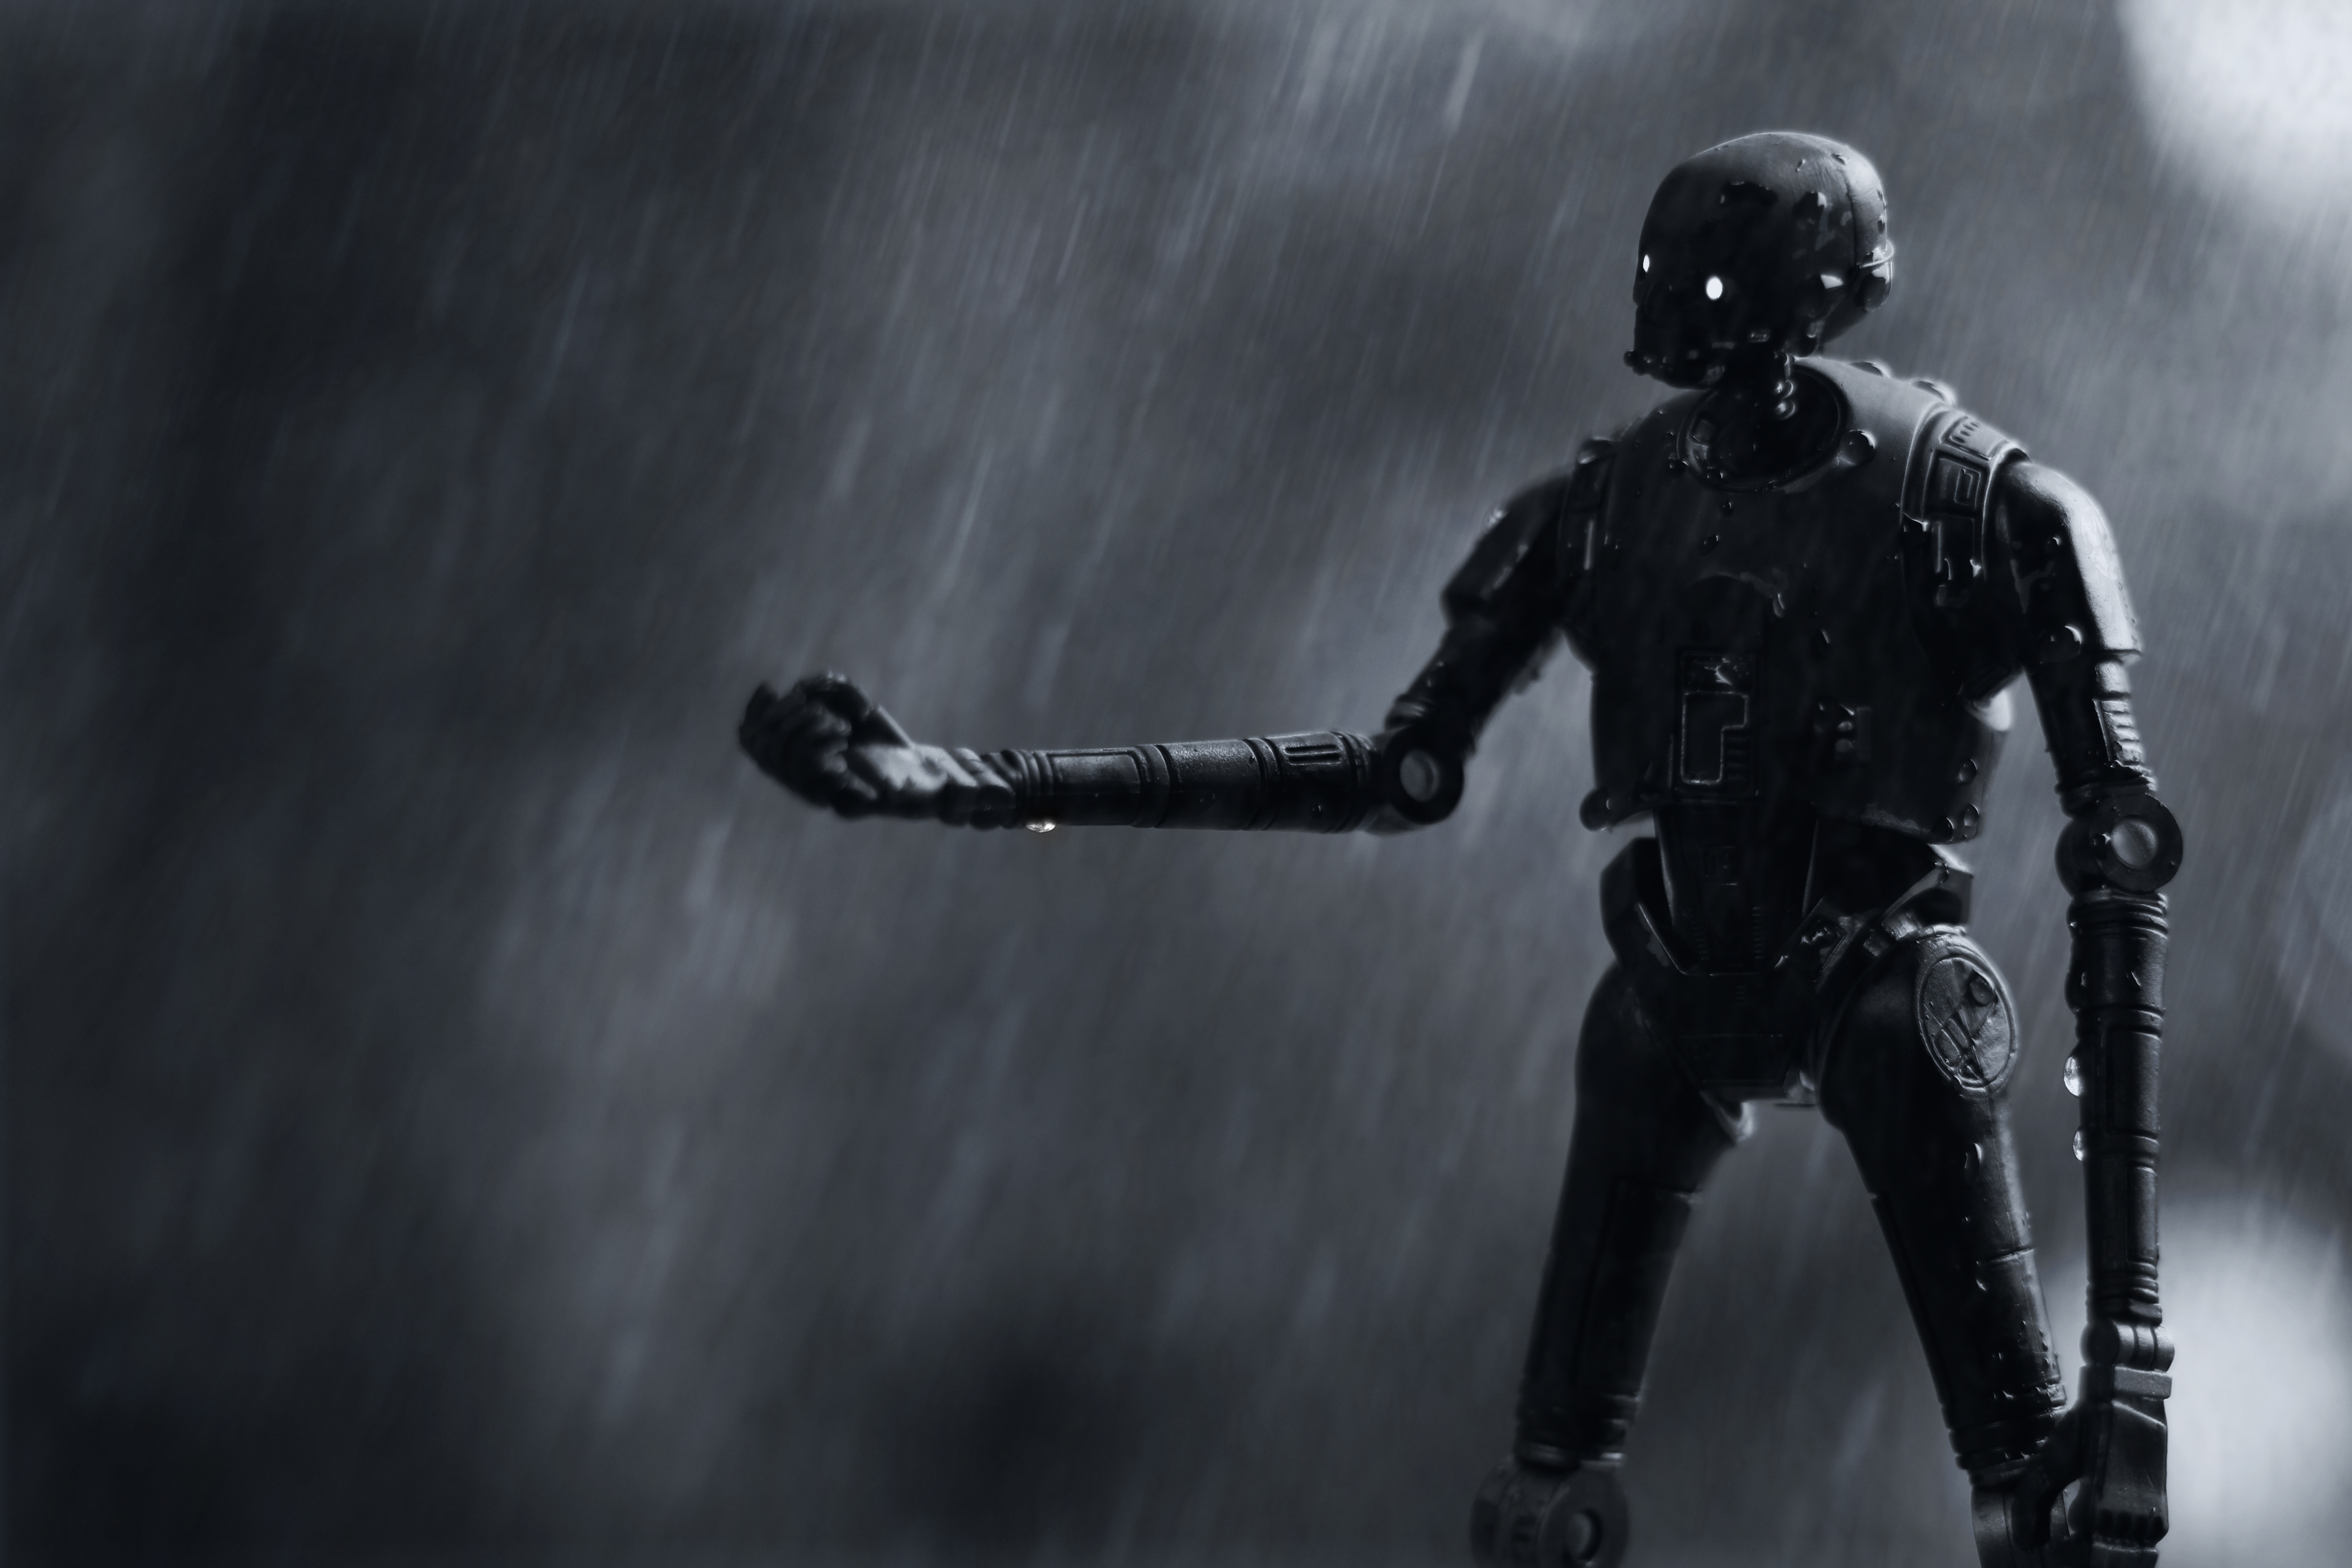 K 2SO Star Wars, HD Movies, 4k Wallpapers, Images ...